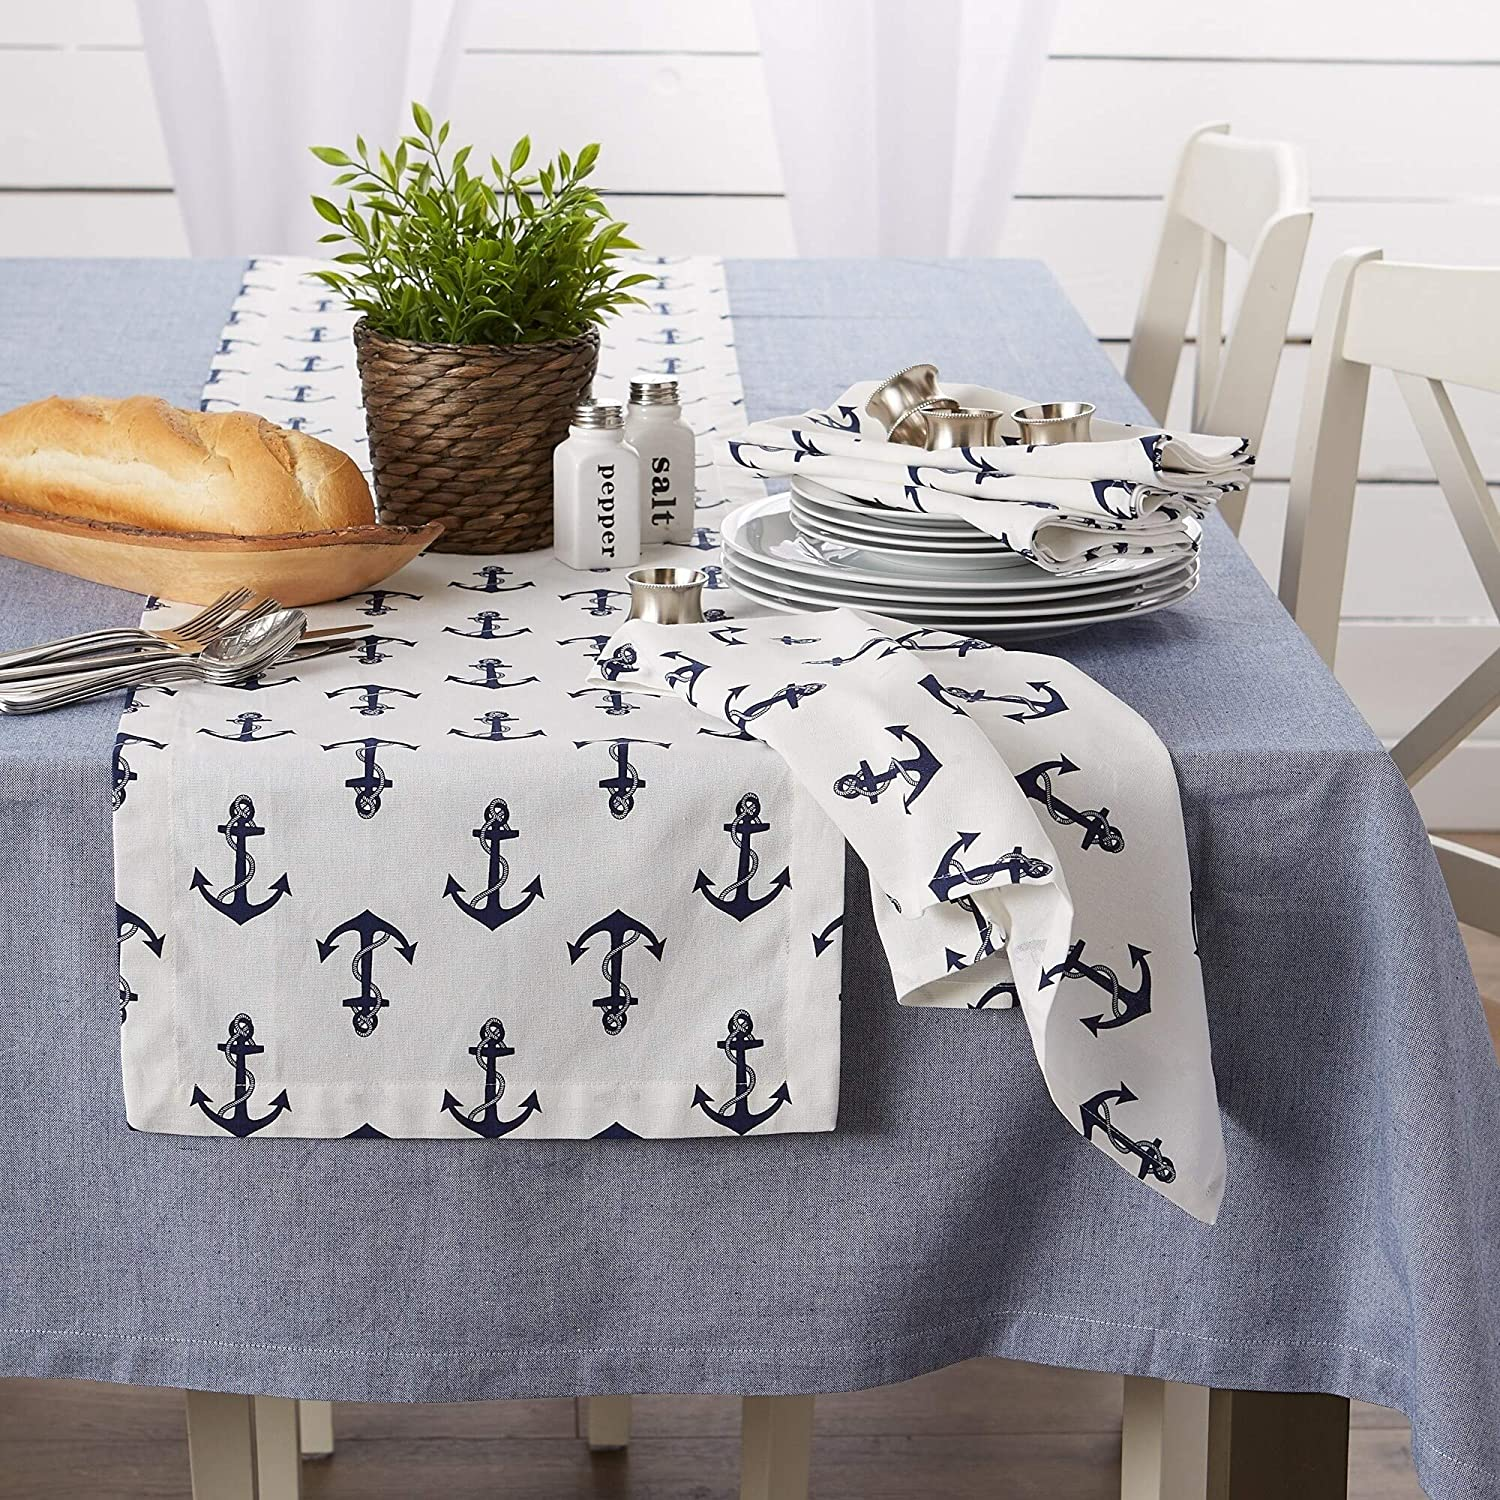 Maritime Spread Kitchen Textiles 20x20 Anchors Away 6 Pieces Square Cotton